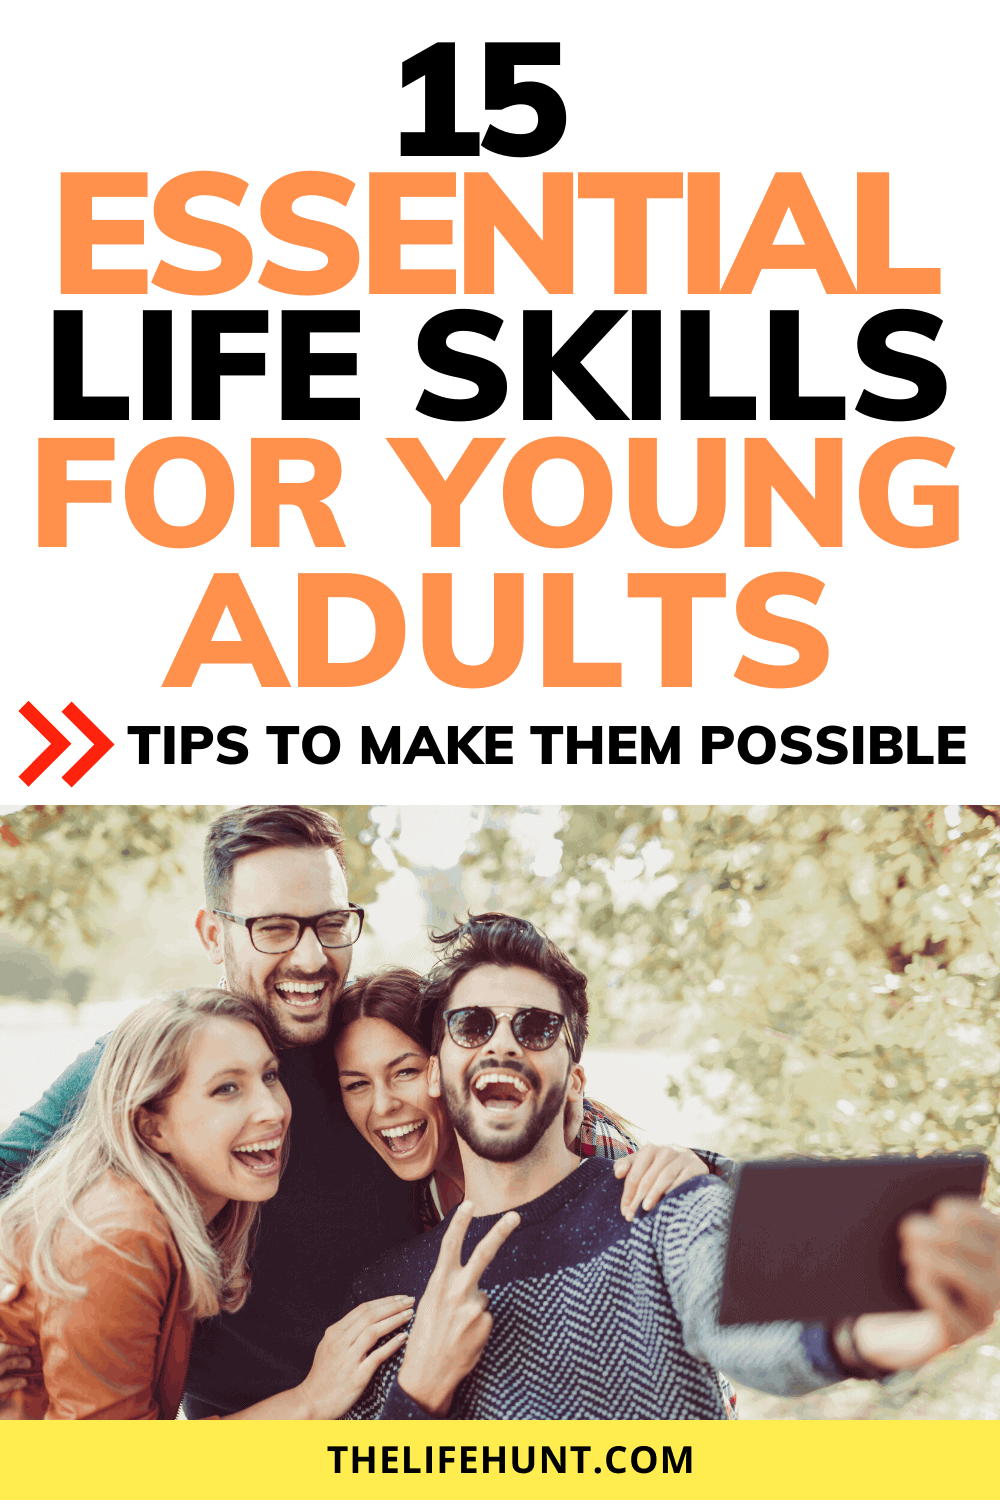 Essential life skills group of young adults